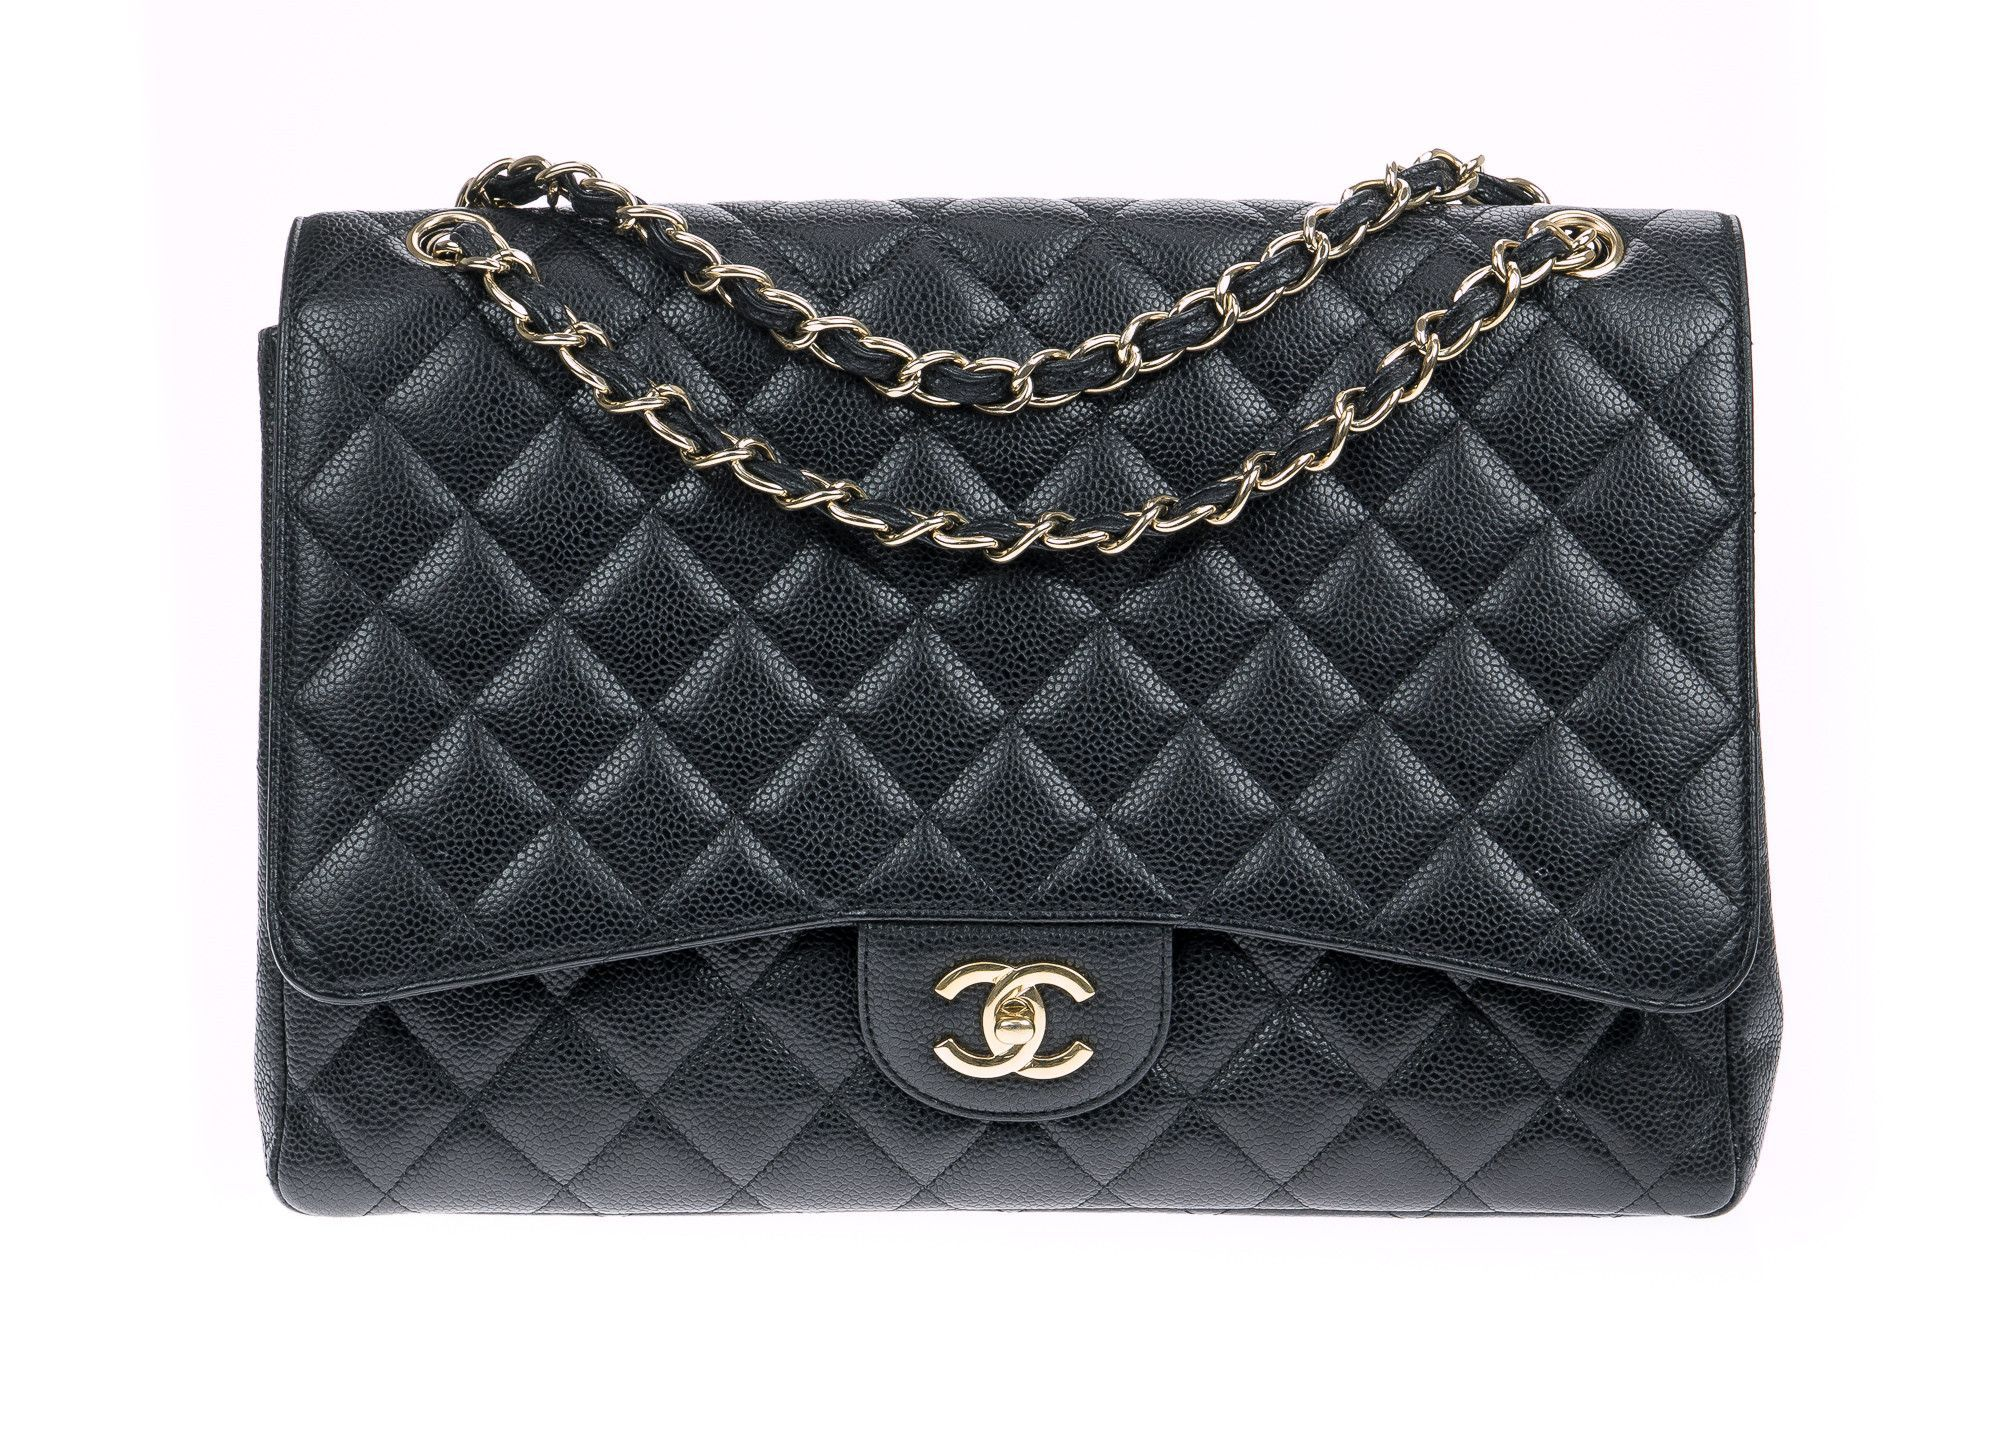 8207afe49f6b Chanel Le Boy Black Calfskin Quilted Old Medium Size Flap Bag with Ruthenium  Hardware LIMITED EDITION PAINTED LOCK